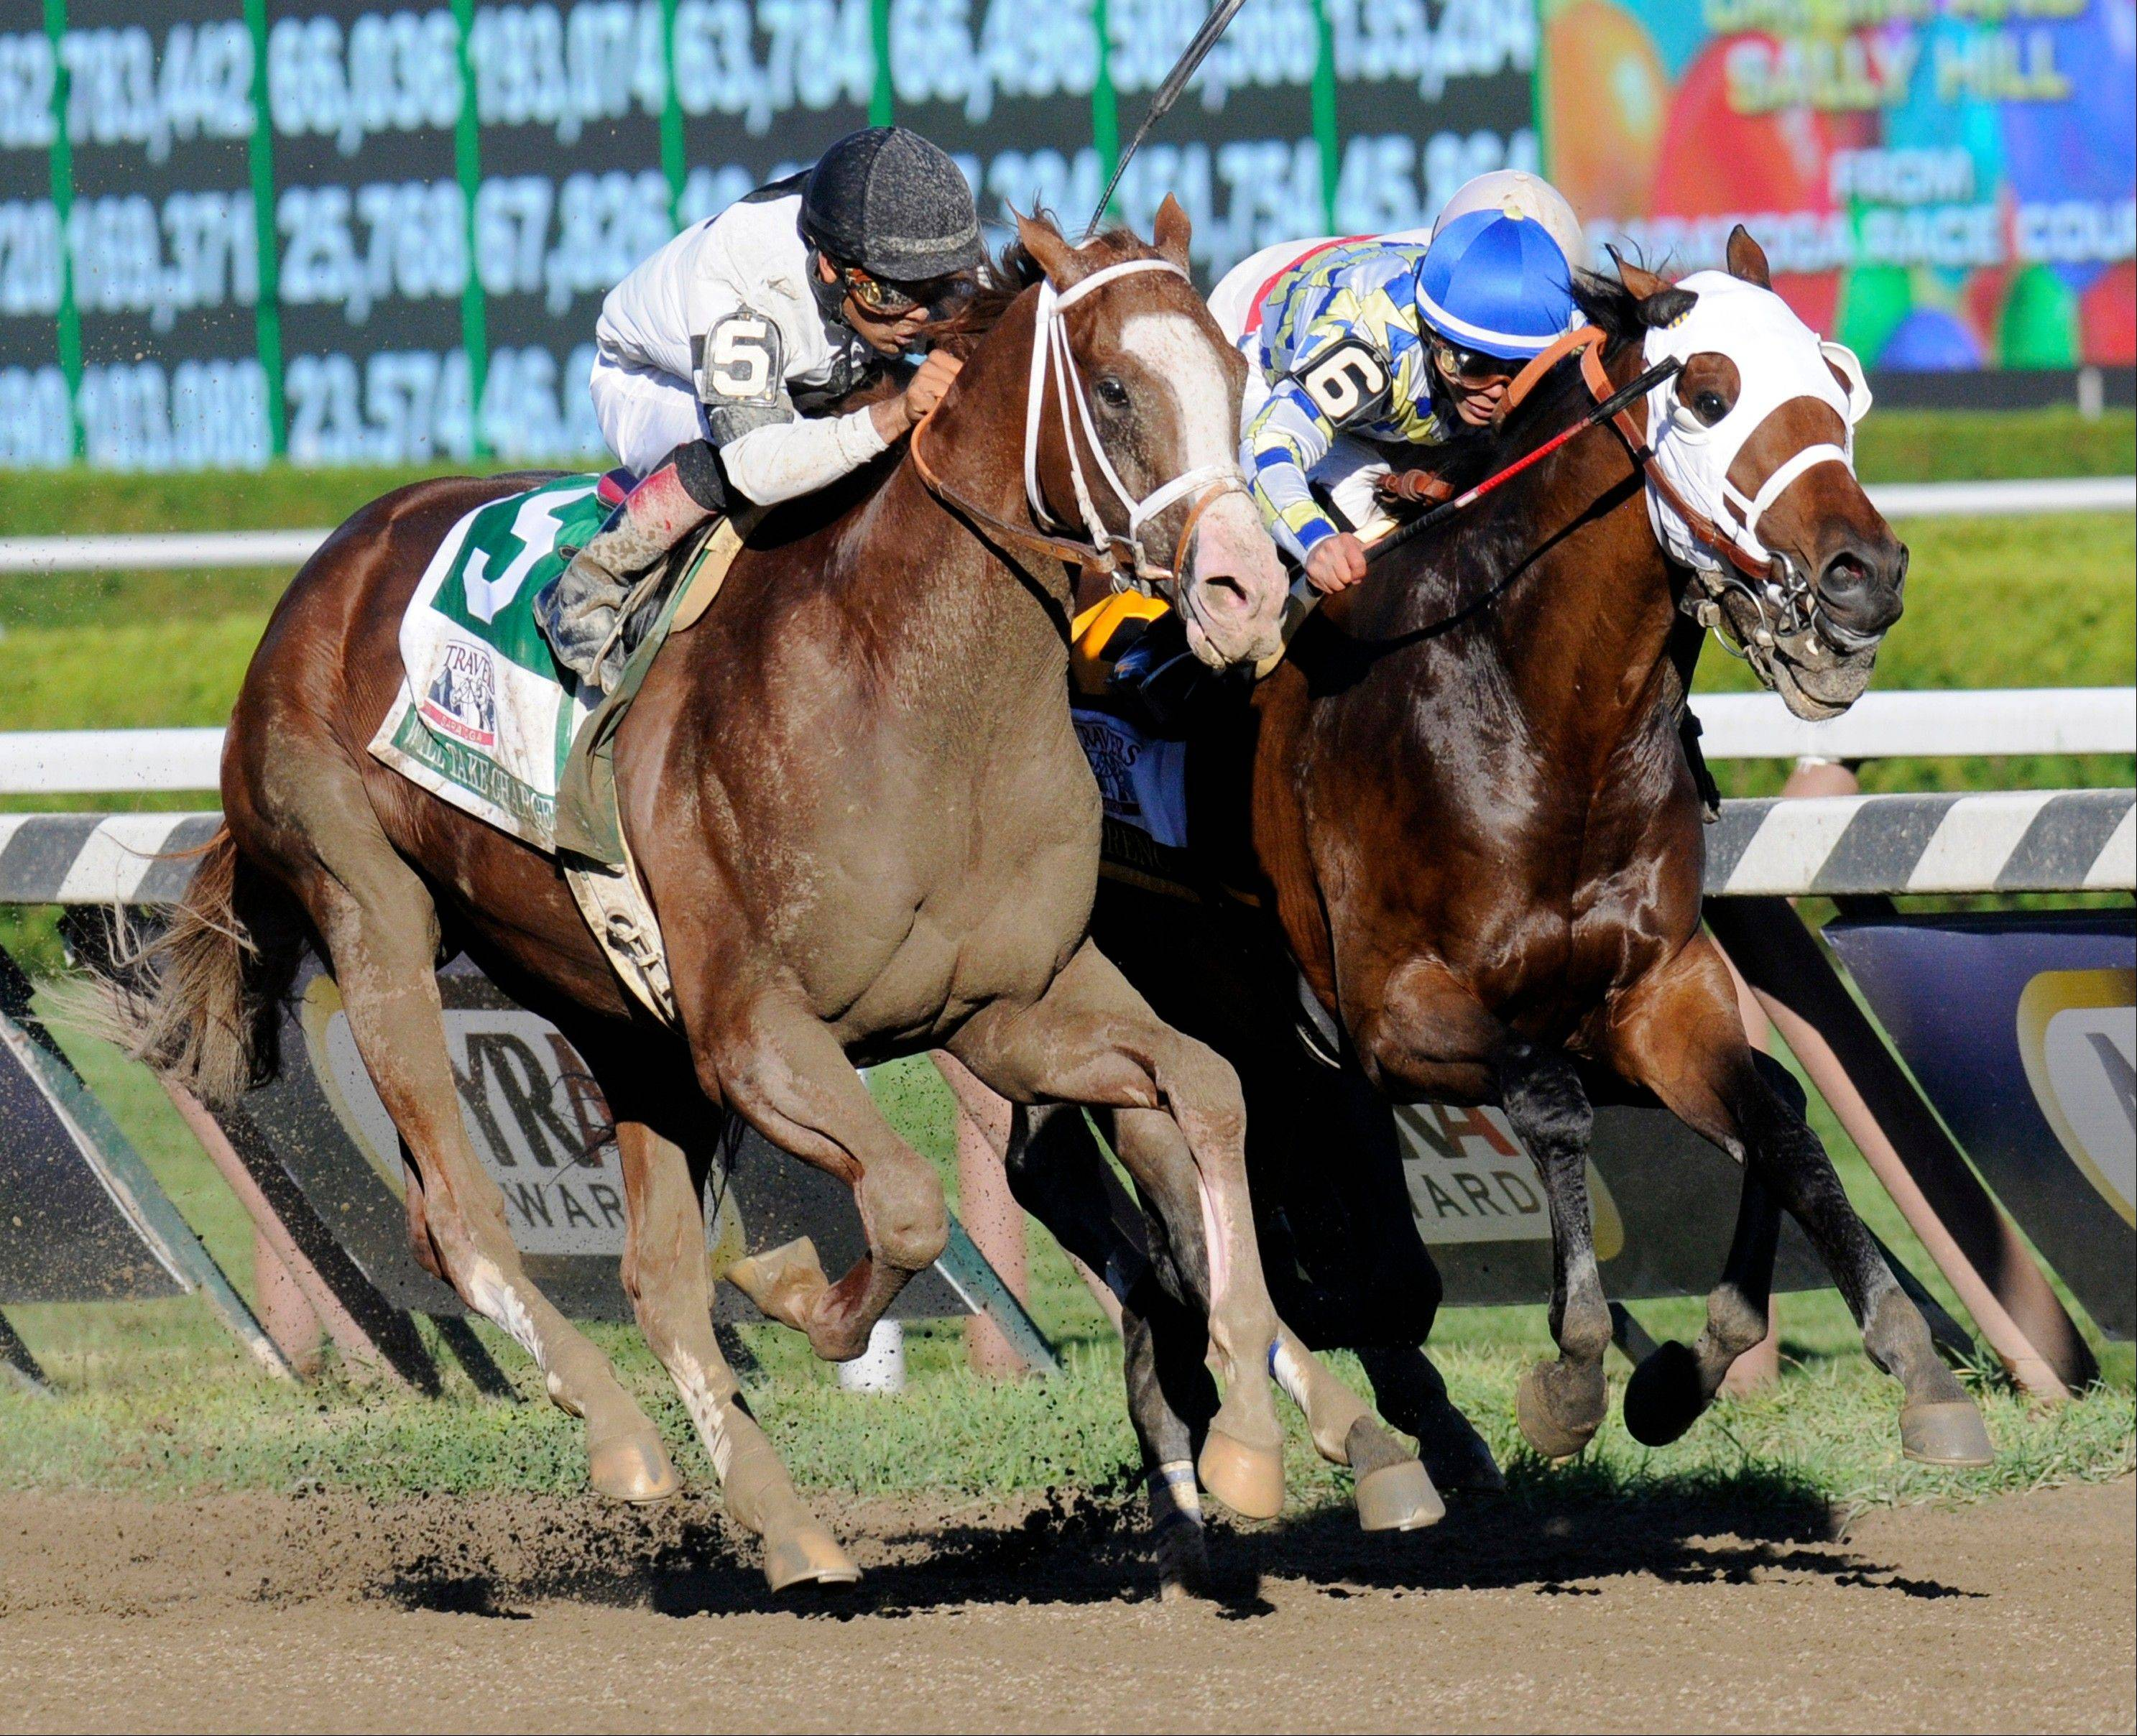 Will Take Charge, left, with jockey Luis Saez aboard, pulls past Moreno, with Jockey Jose L. Ortiz up, to win the Travers Stakes horse race at Saratoga Race Course in Saratoga Springs, N.Y., Saturday, Aug. 24, 2013.